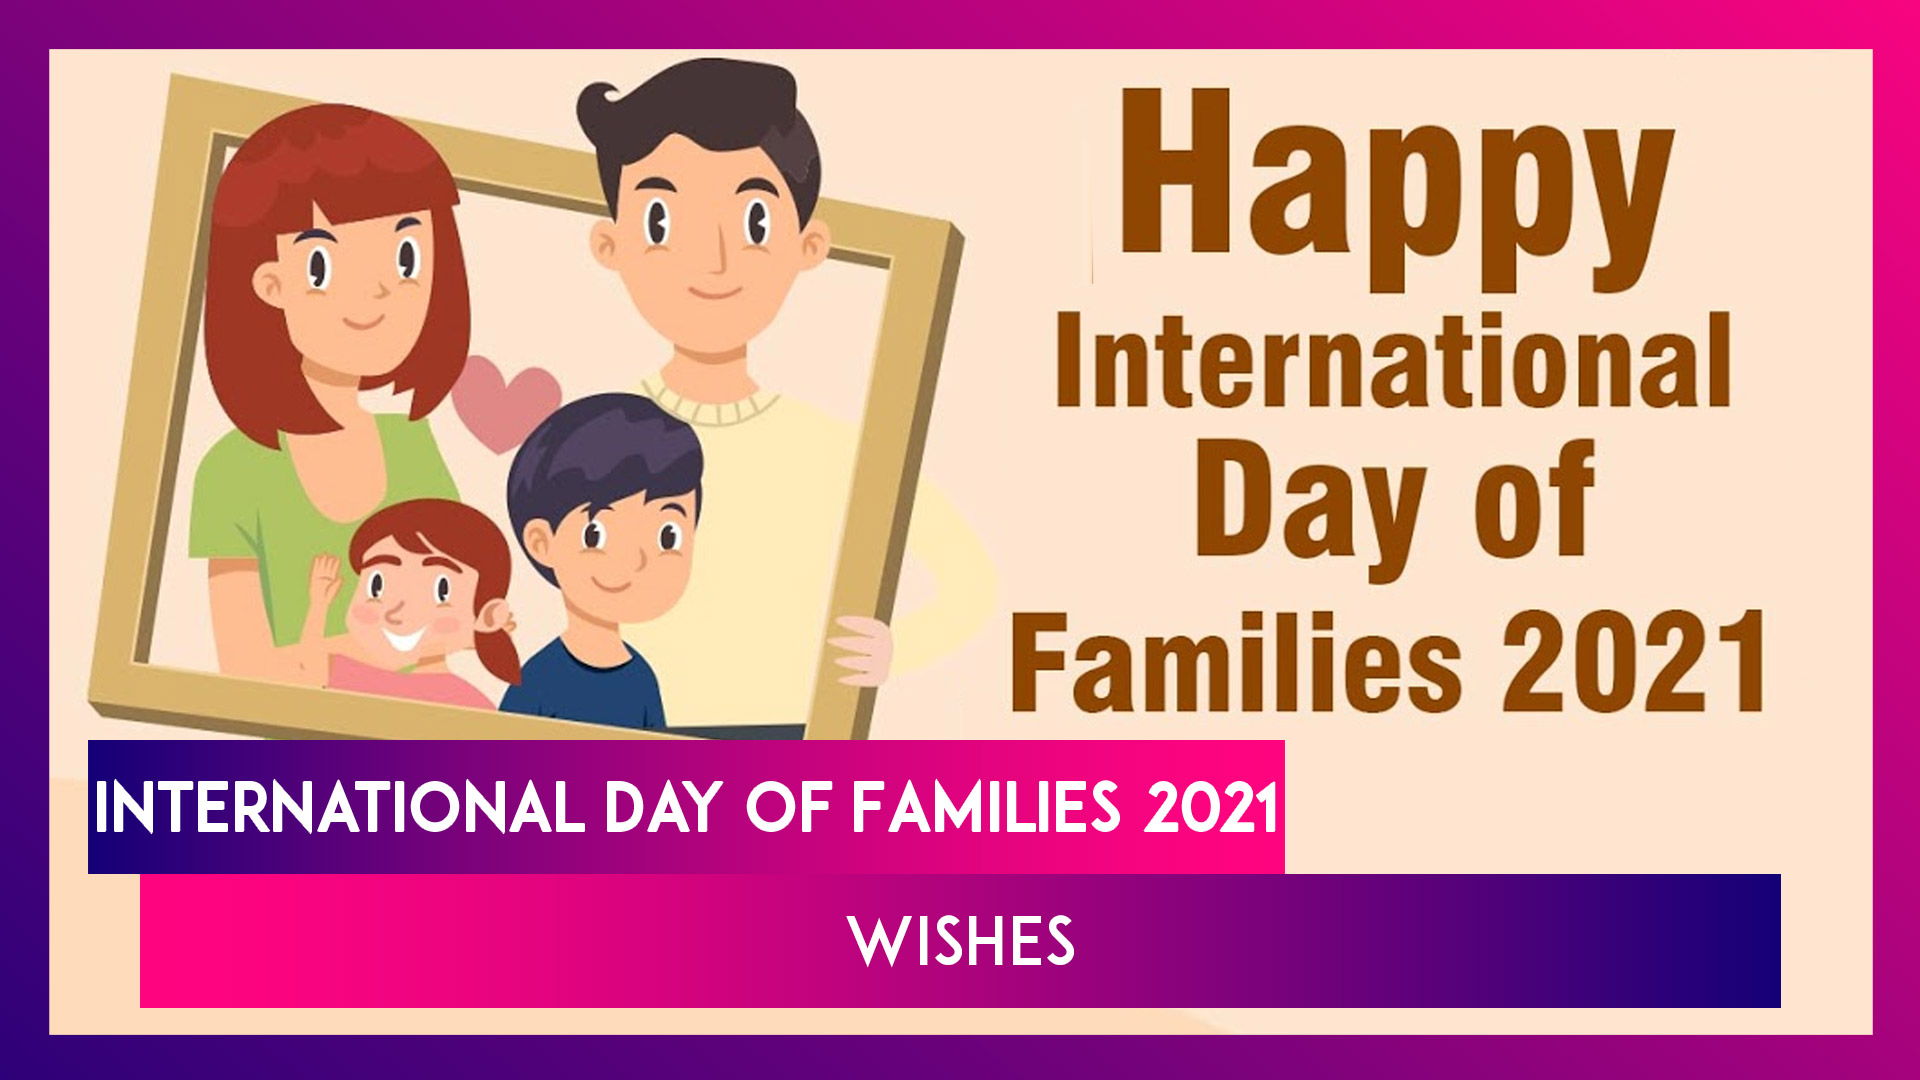 International Day of Families 2021 Wishes: Share 'Family Goals' Fun Quotes, Messages & Greetings